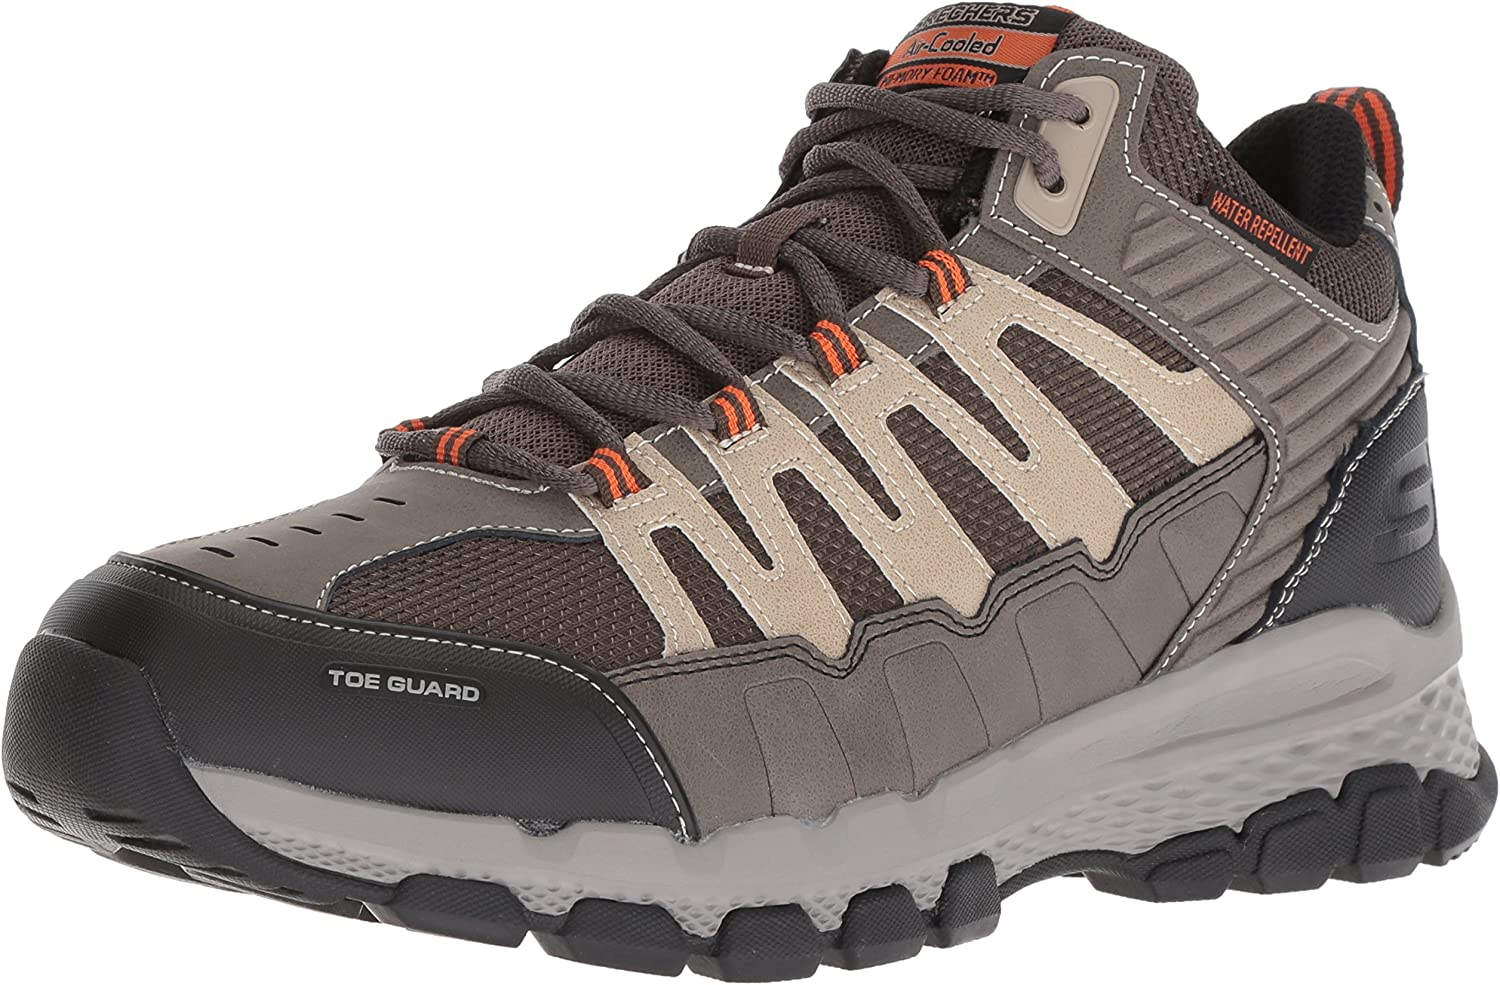 Skechers Men's Outland Outland Outland 2.0 Girvin Hiking Stiefel, braun Taupe, 6.5 M US 35d